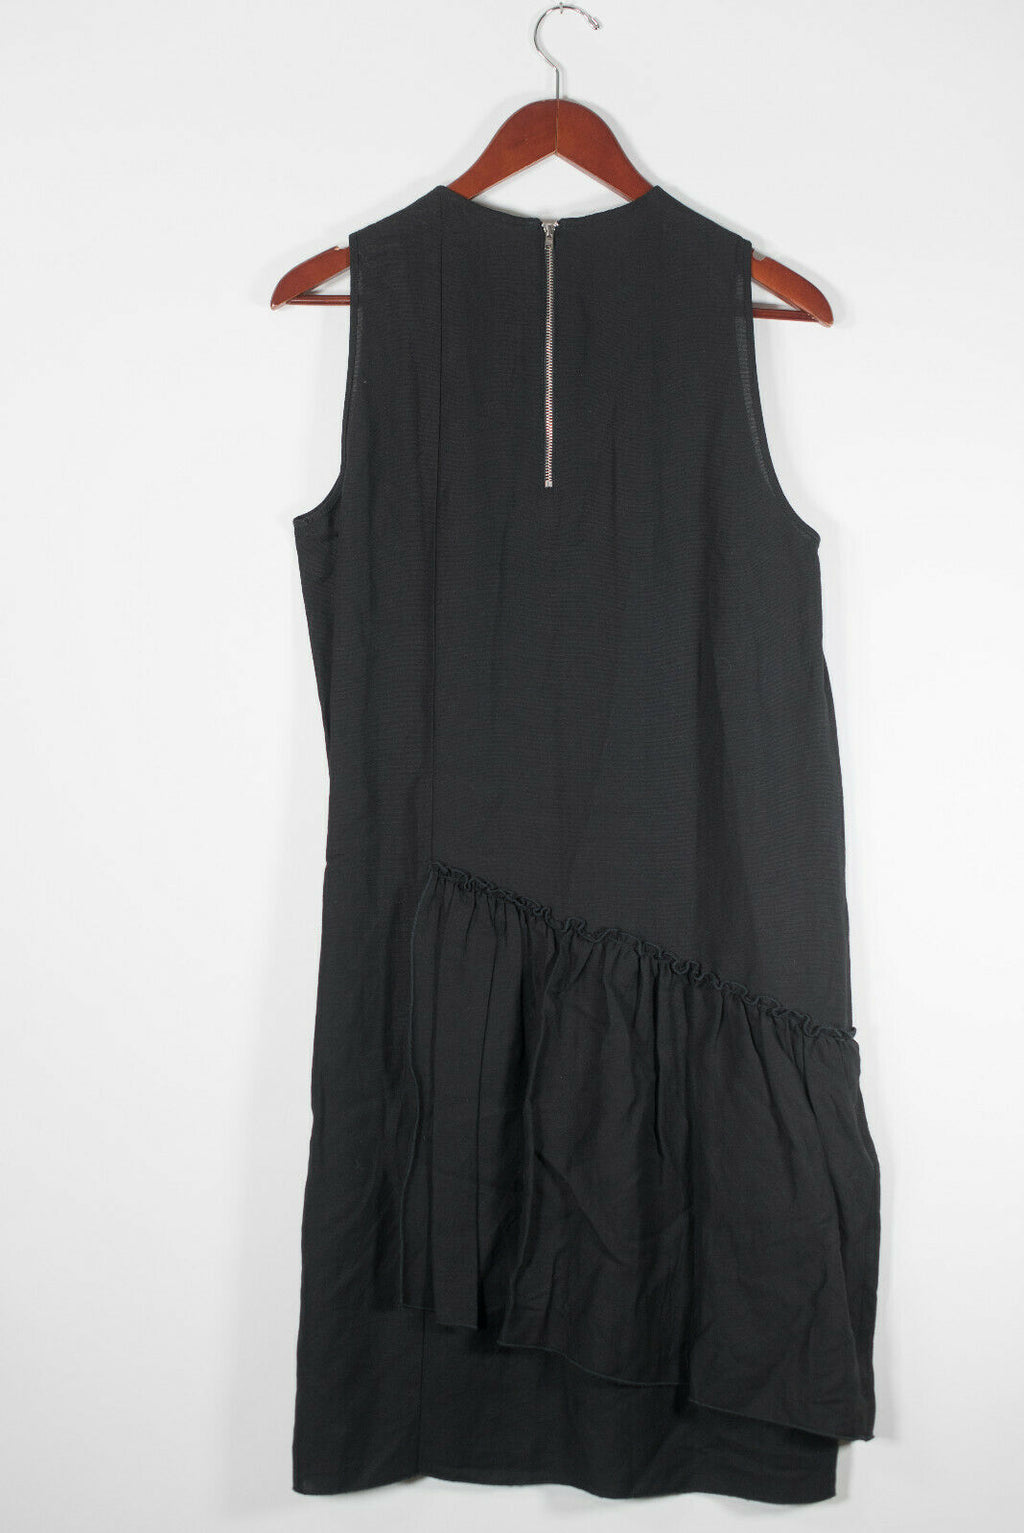 Hache Womens 44 Medium Black Dress Sleeveless Linen Blend Asymmetrical Midi $595